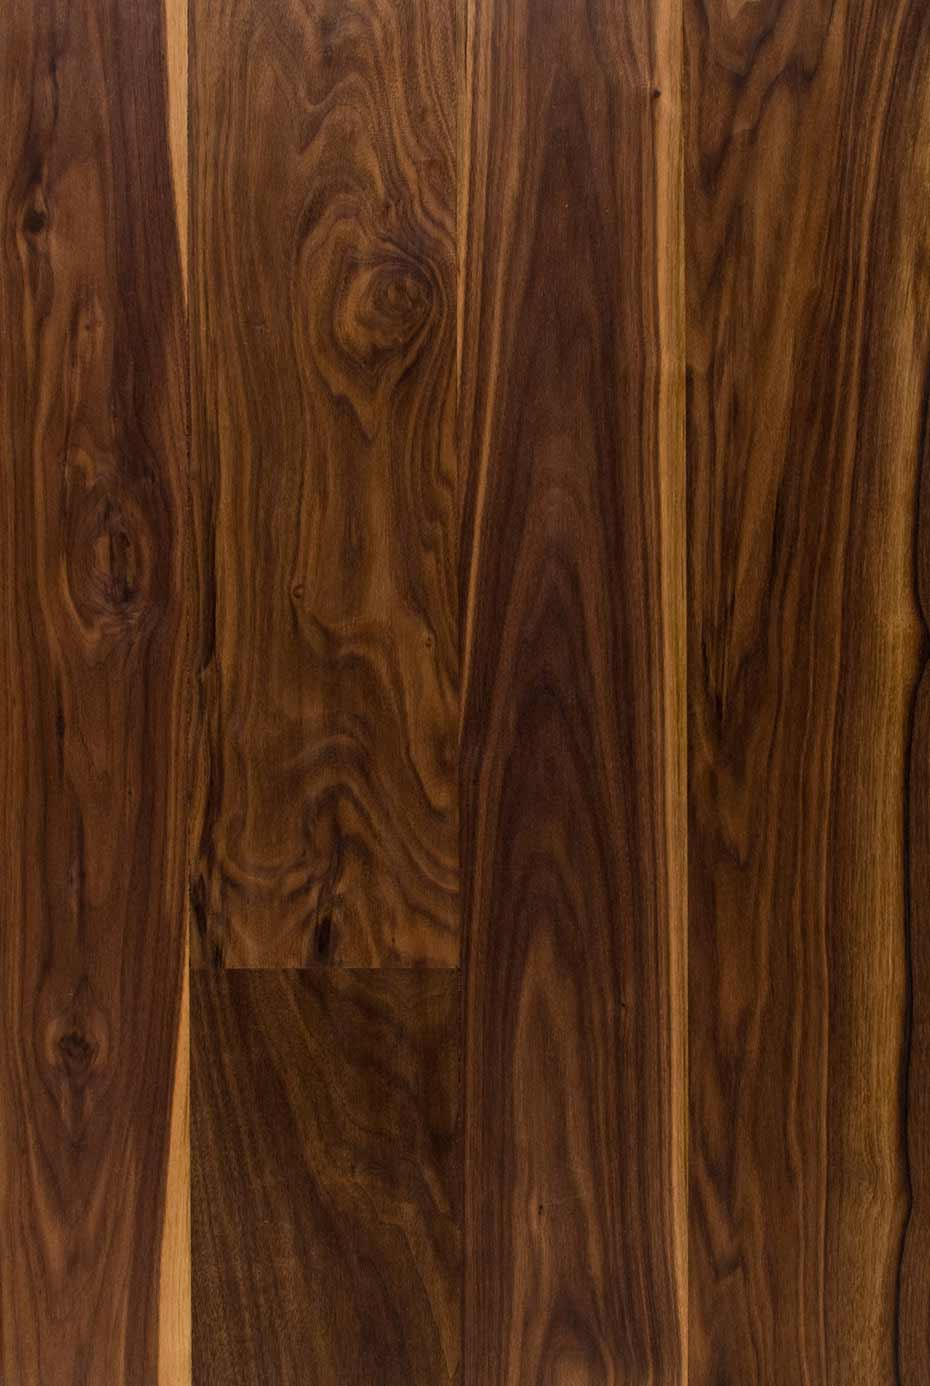 Harvest walnut flooring mountain lumber company for Walnut hardwood flooring